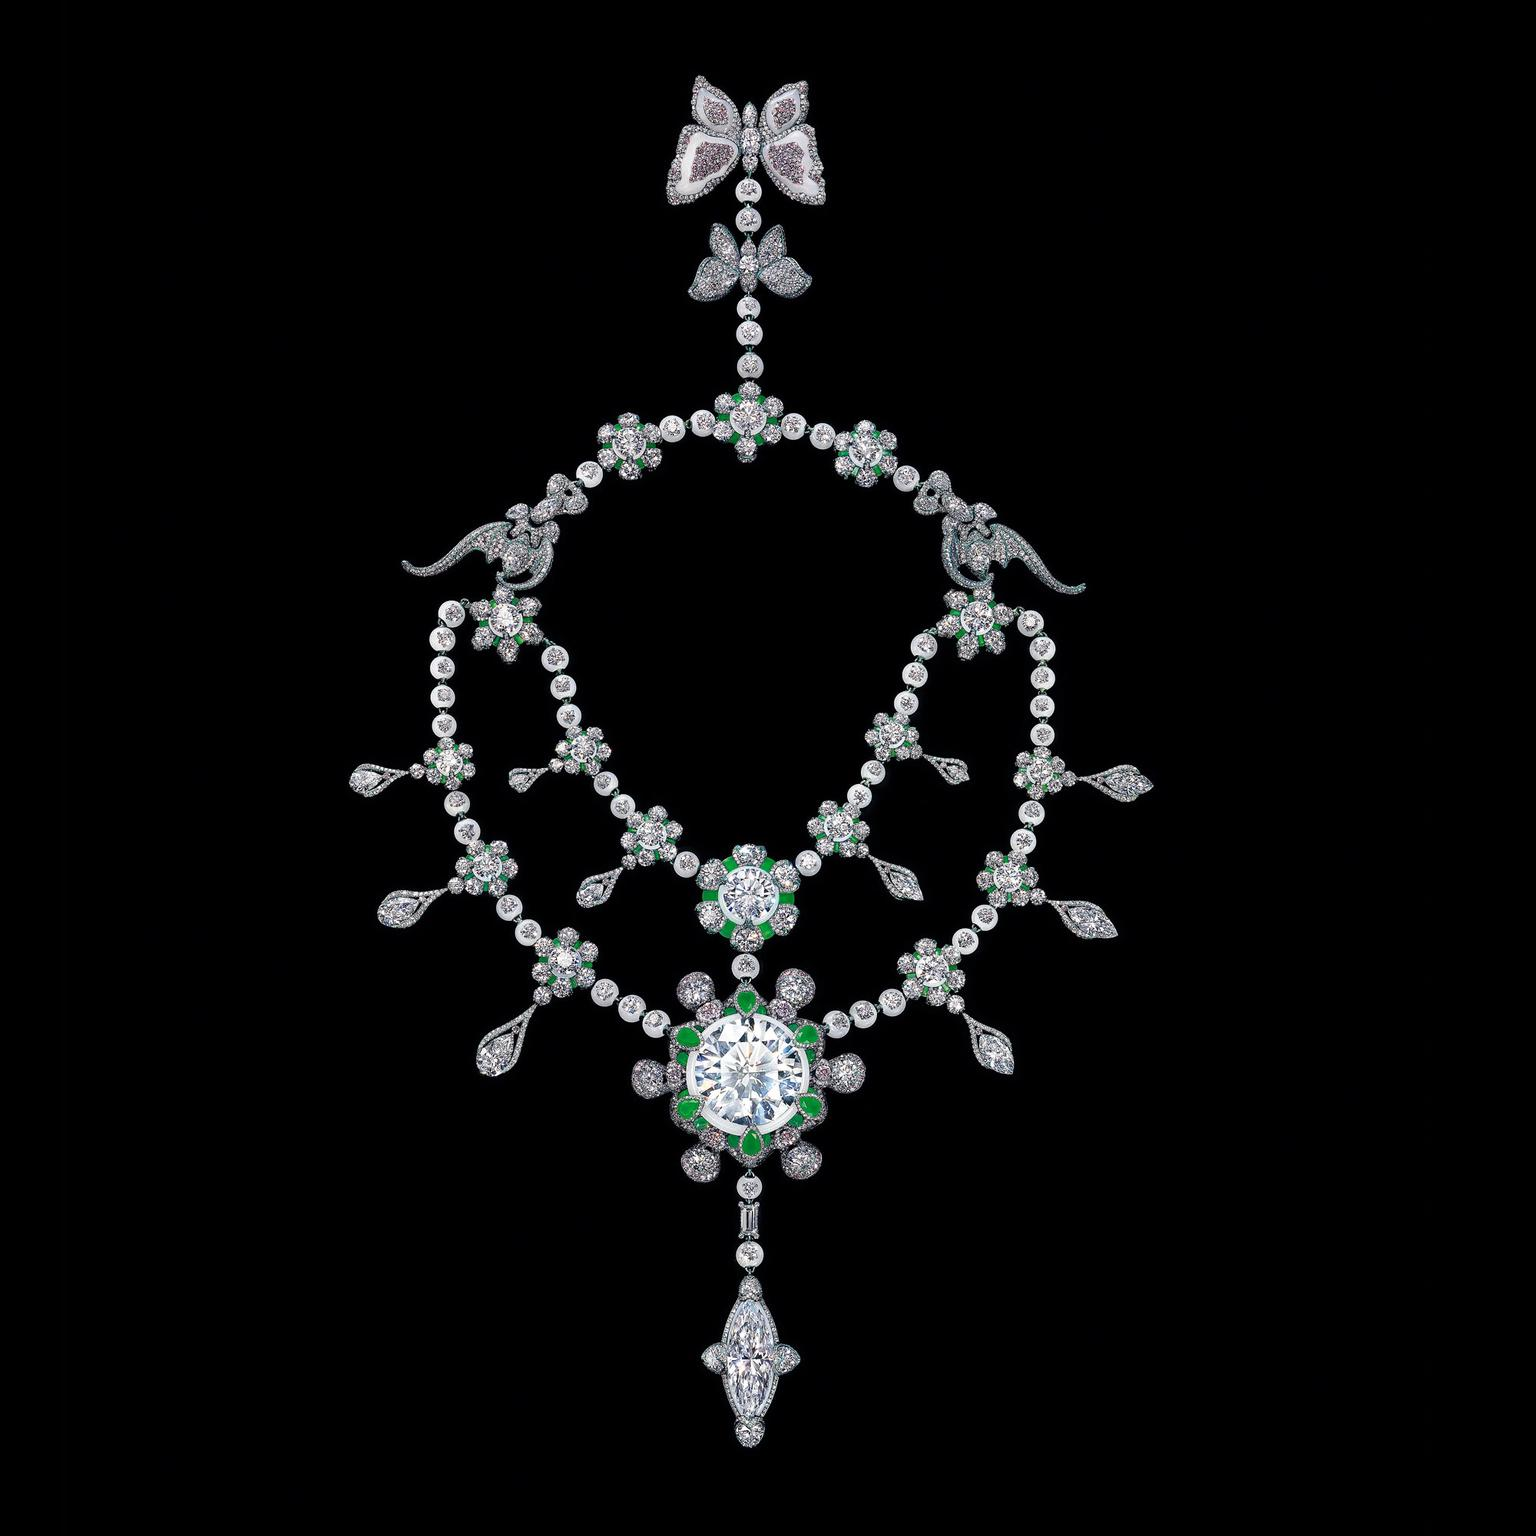 Wallace Chan A Heritage in Bloom diamond necklace